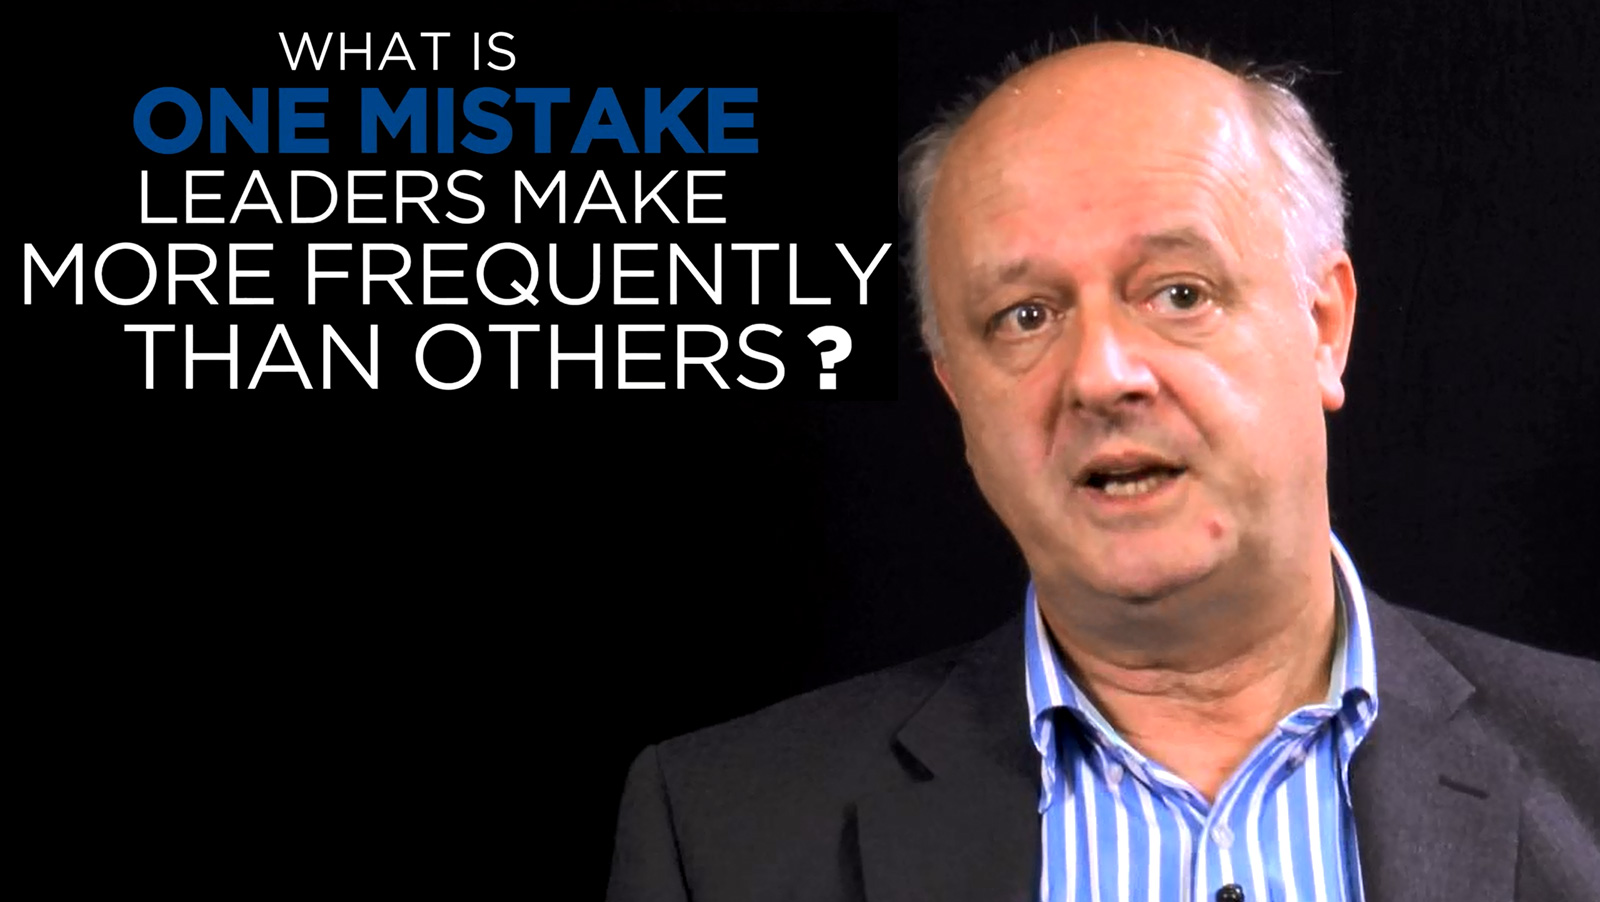 Mark Blandford: Shared Experince - What is one mistake leaders make more frequently than others?